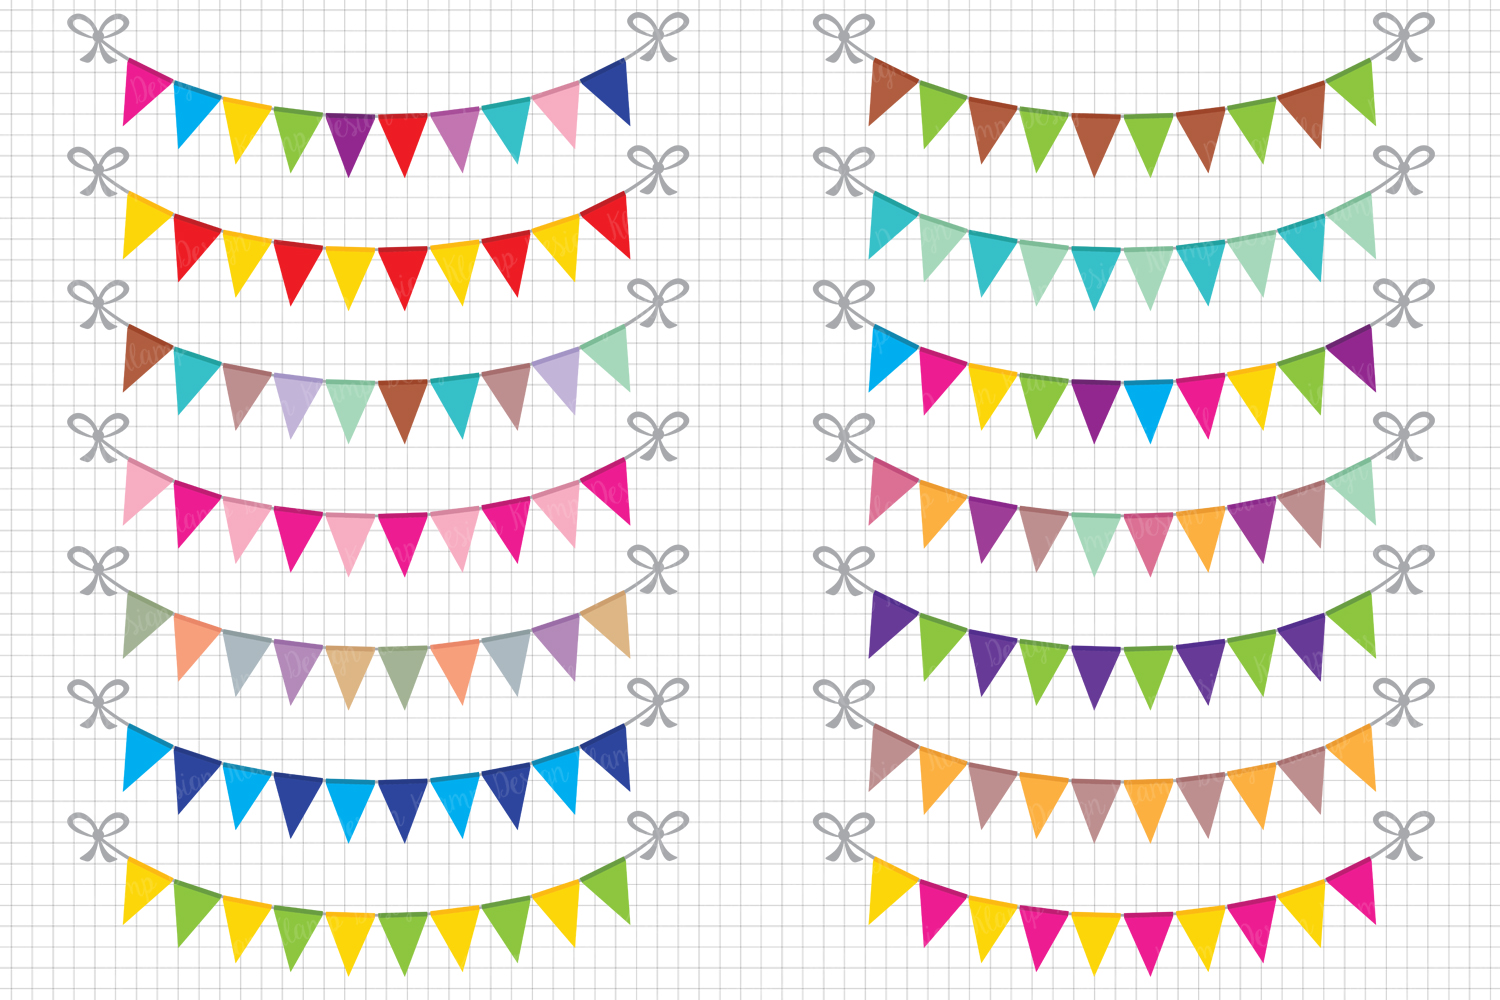 Bunting Banners Clipart / Party Bunting, Banner Clipart, Banner Flag Clipart, Party Banners, Holiday Bunting example image 1